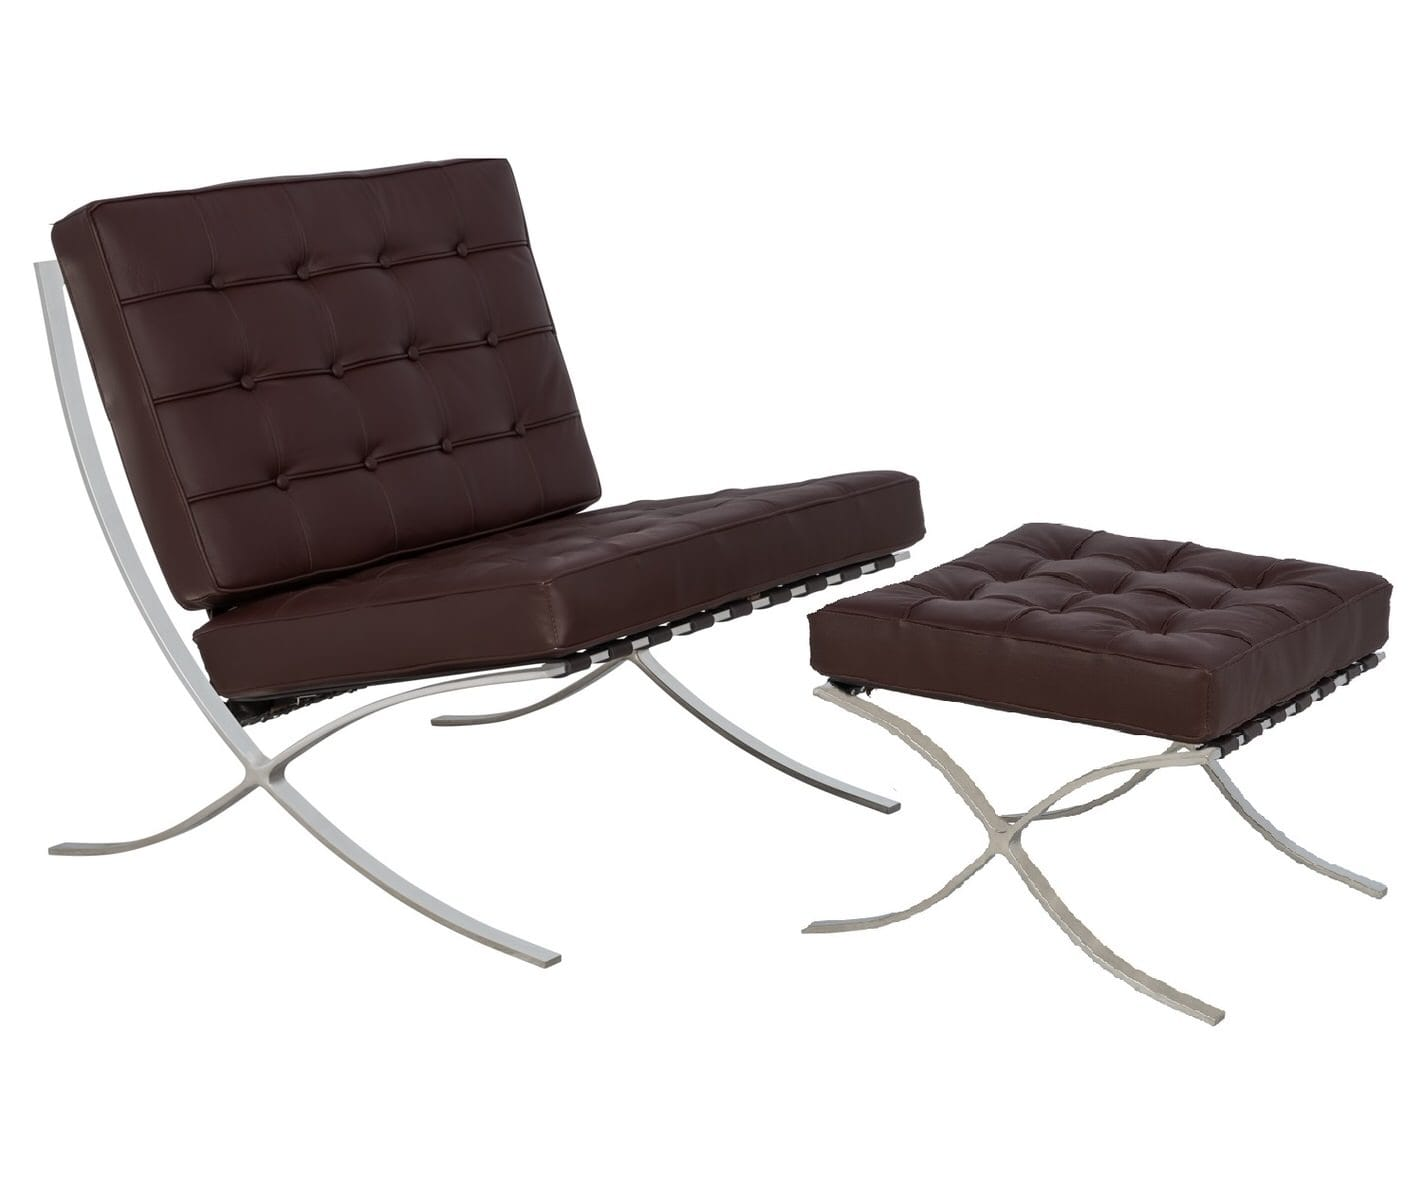 Stupendous Bellefonte Style Modern Pavilion Dark Brown Leather Chair Ottoman By Leisuremod Ncnpc Chair Design For Home Ncnpcorg